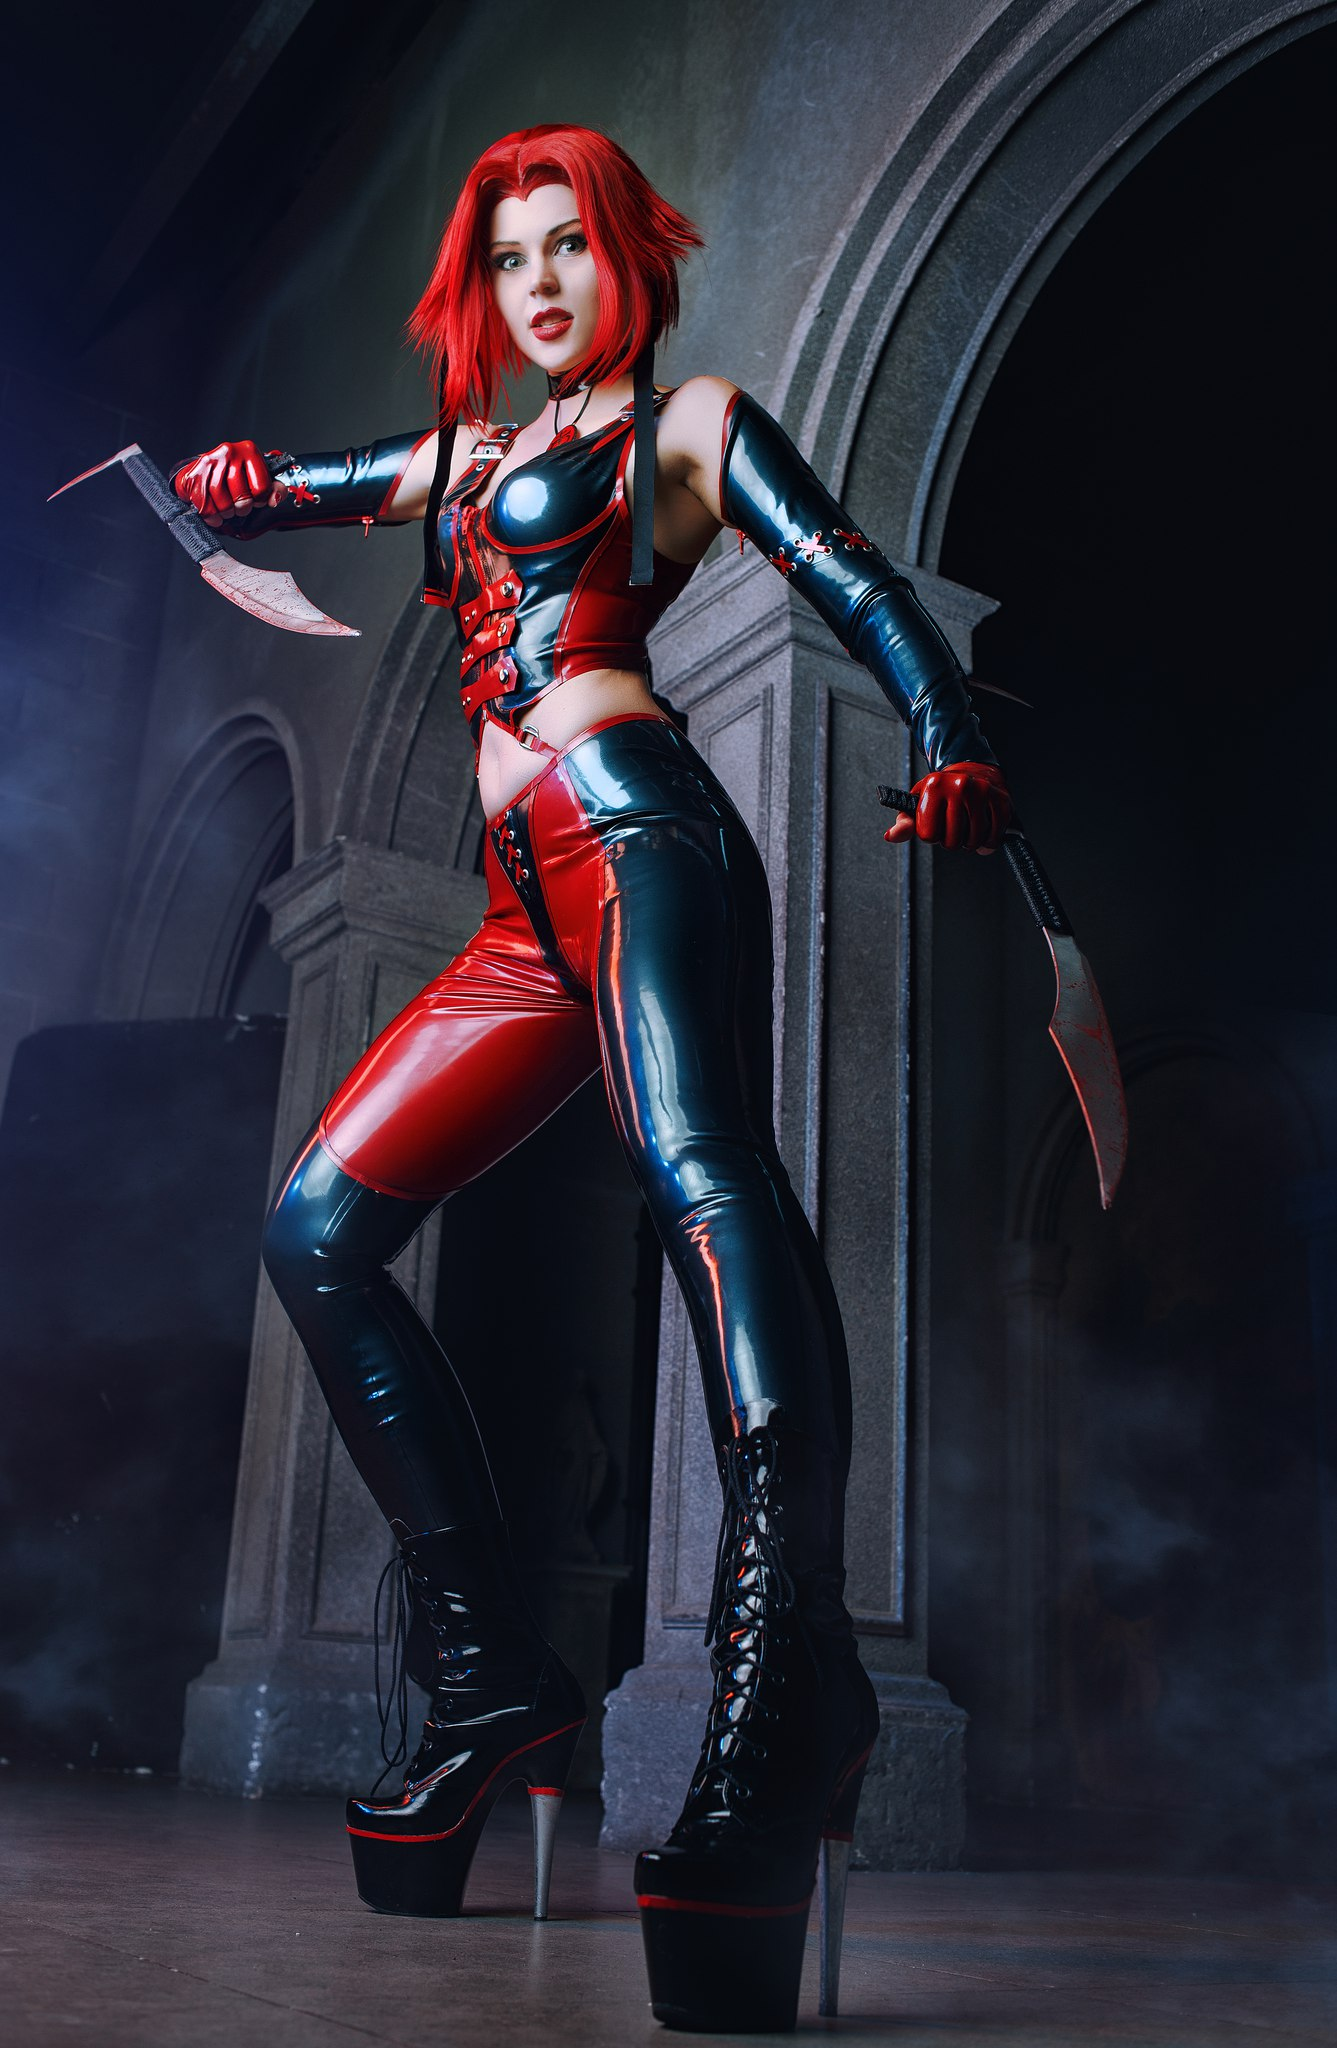 Bloodrayne titfuck adult comic